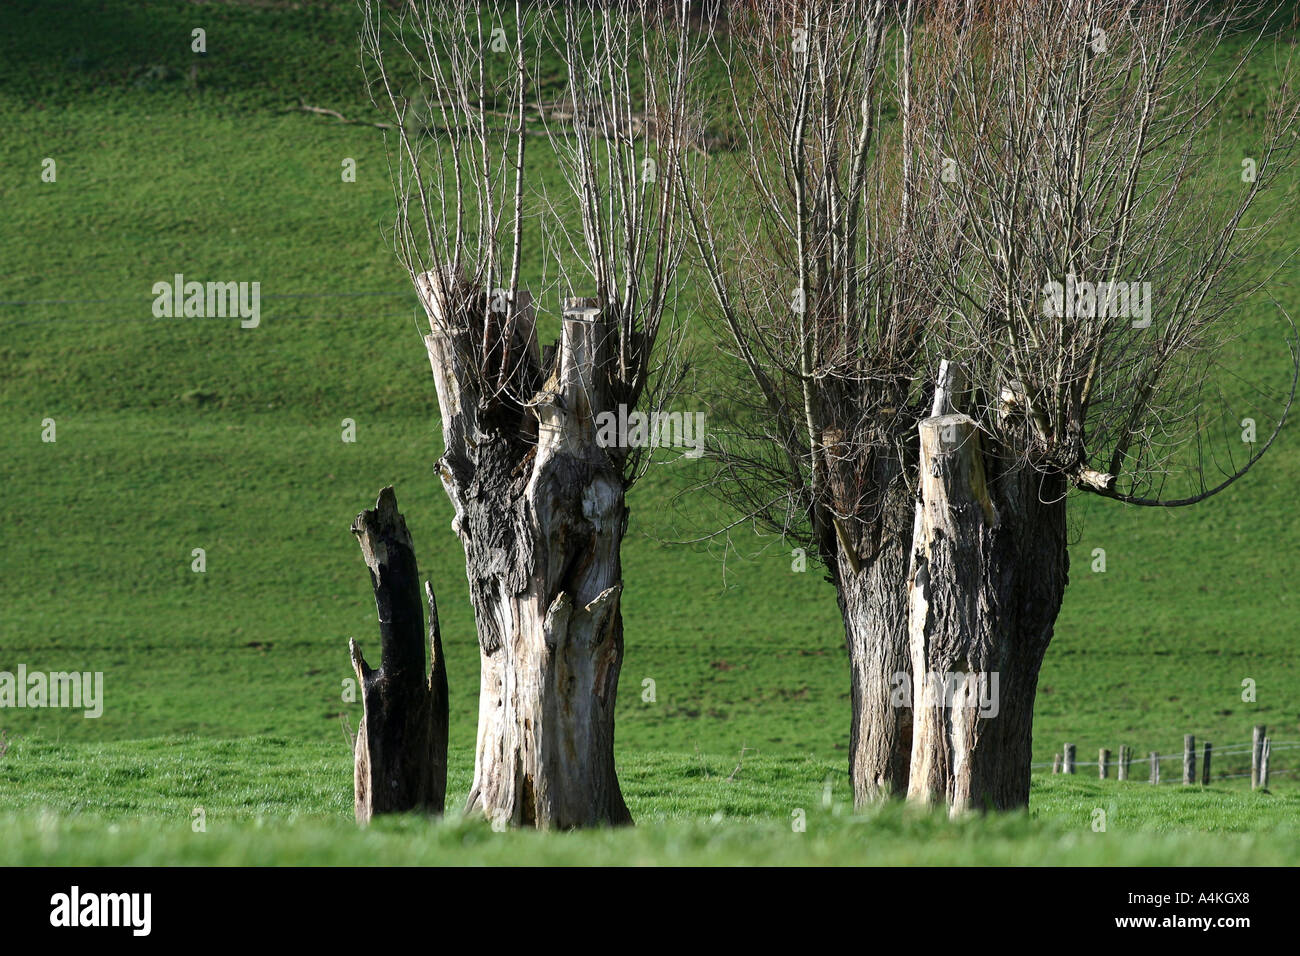 Bare willow trees - Stock Image